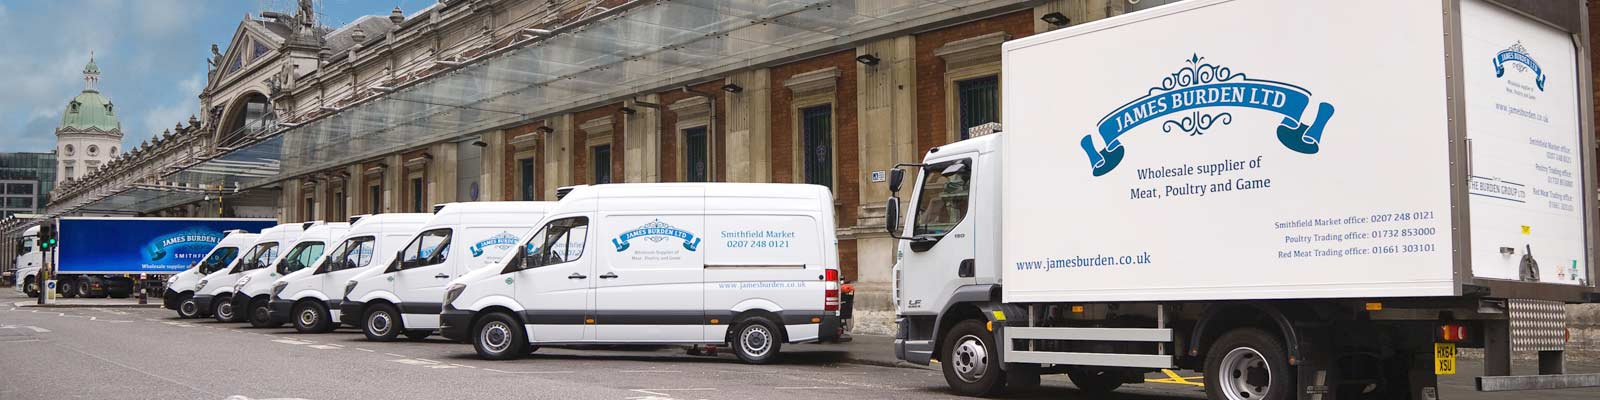 James Burden vehicles pictured outside Smithfield Market, London